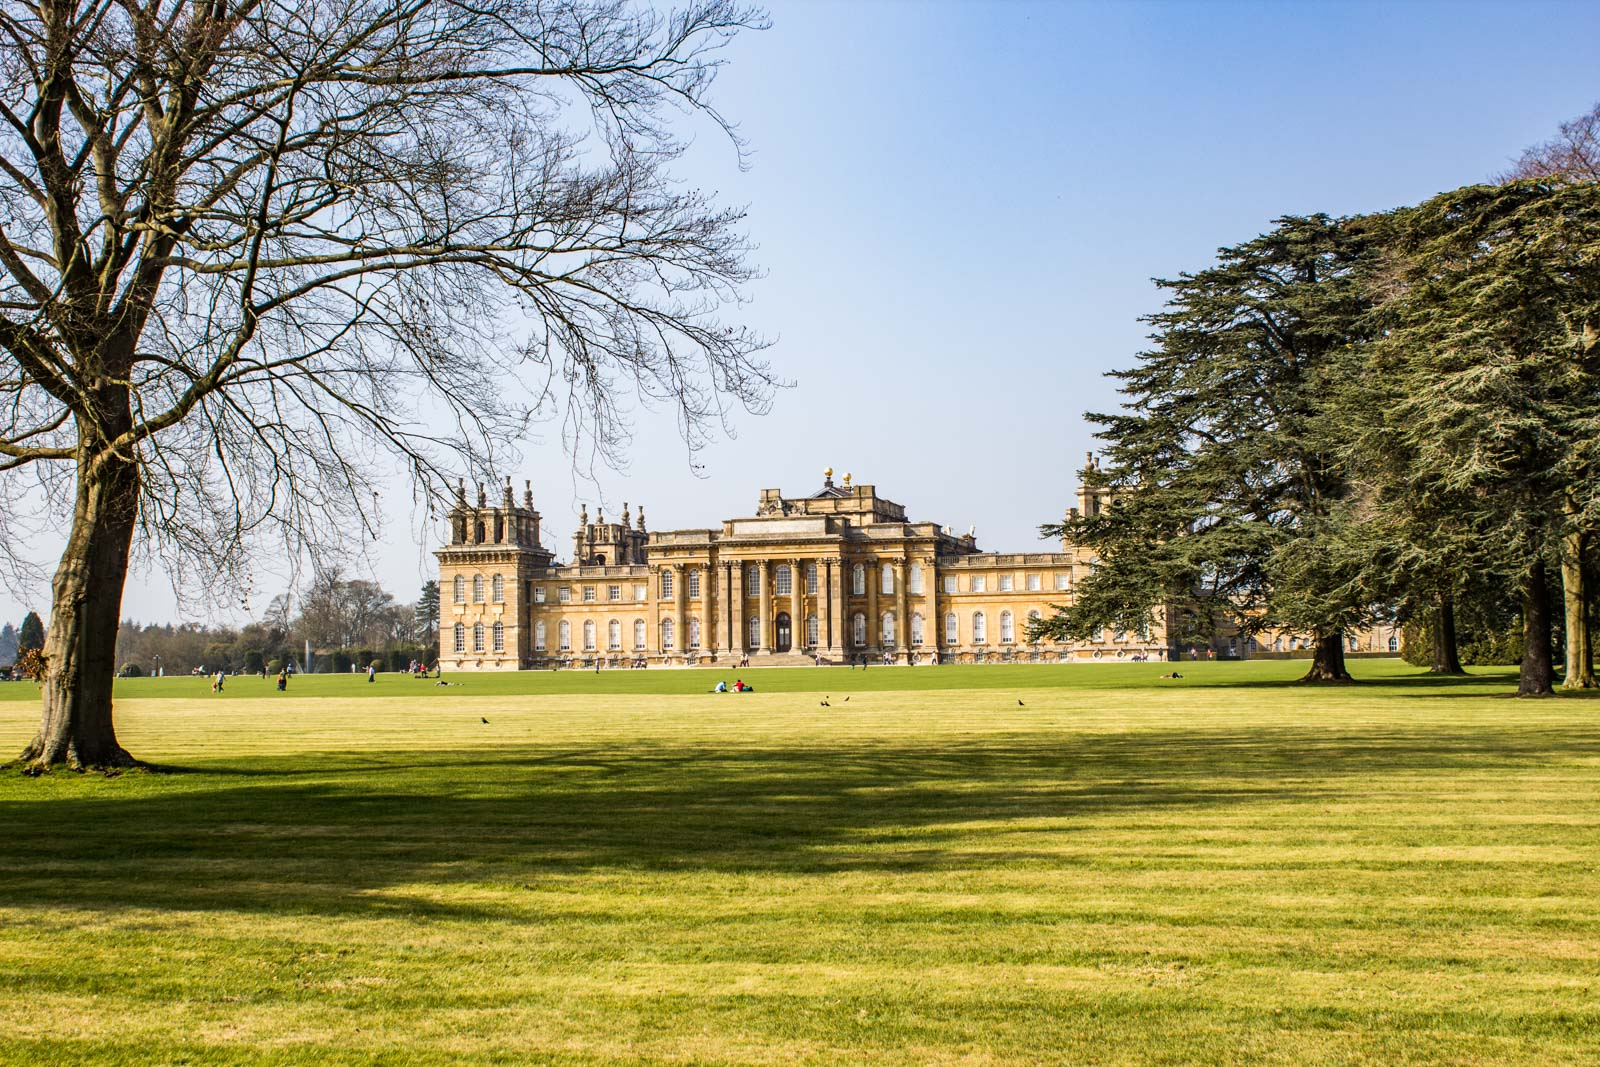 Visiting Blenheim Palace near Oxford, England